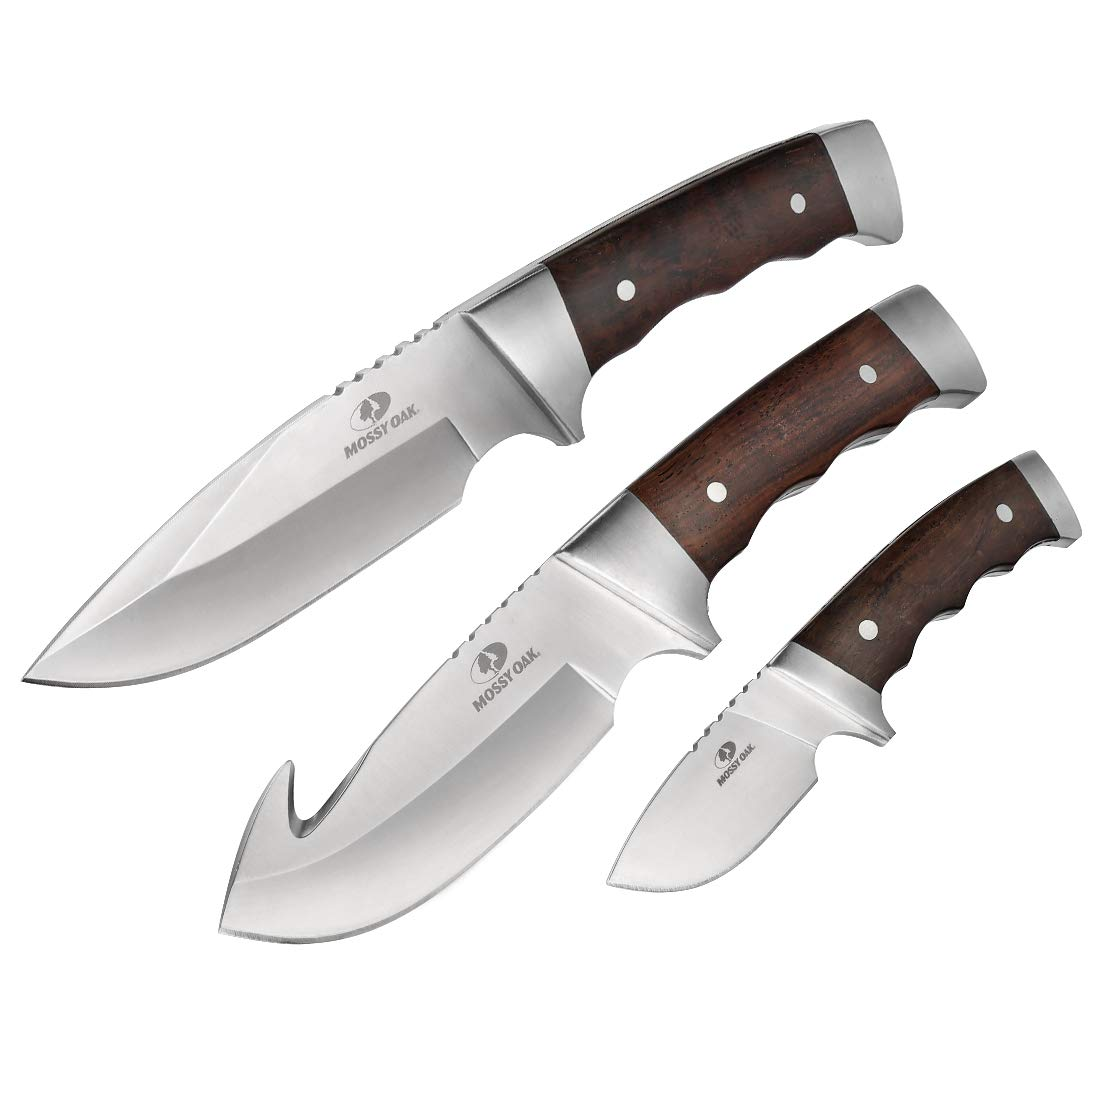 MOSSY OAK Fixed Blade Hunting Knife Set 3-Piece, Wood Handle Straight Edge and Gut Hook Blades Game by Mossy Oak